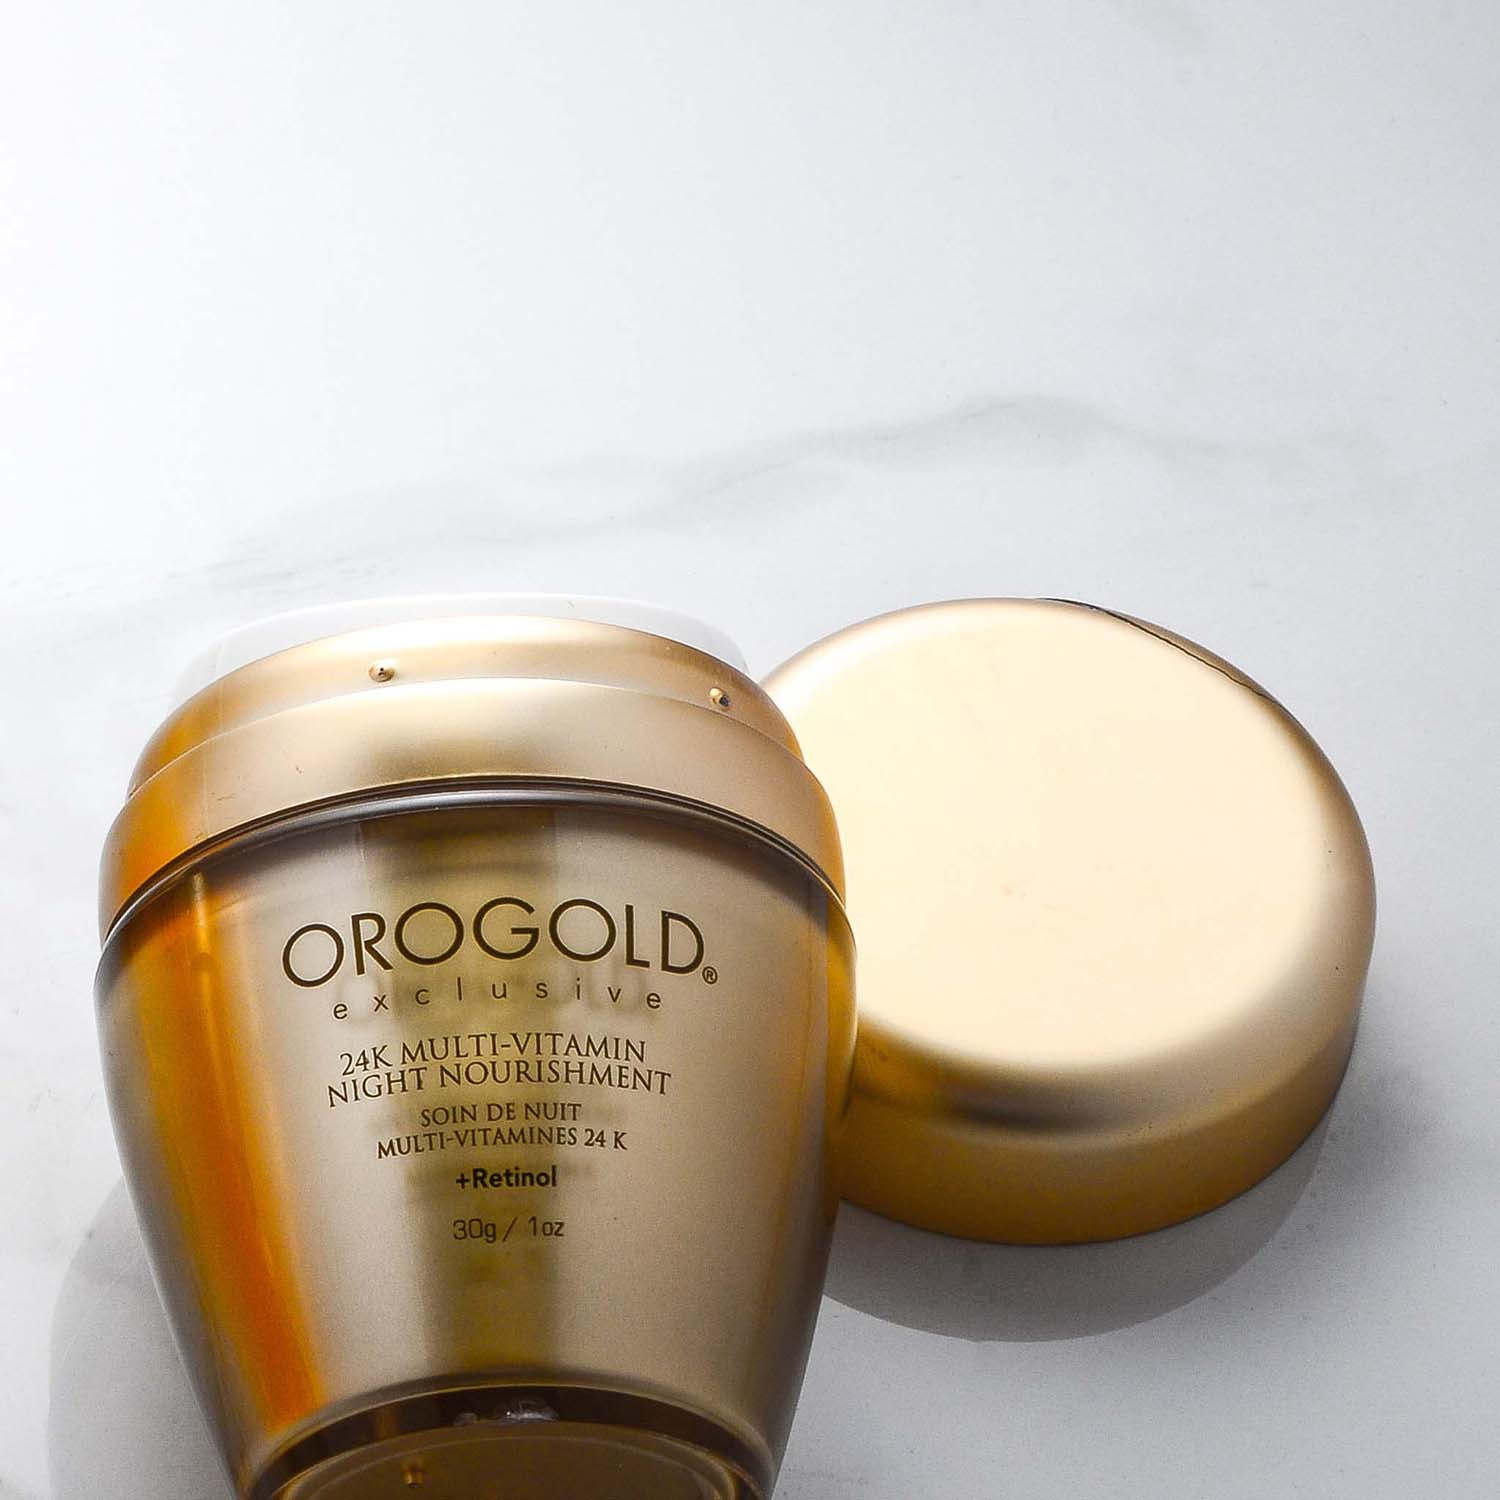 orogold multi-vitamin night cream